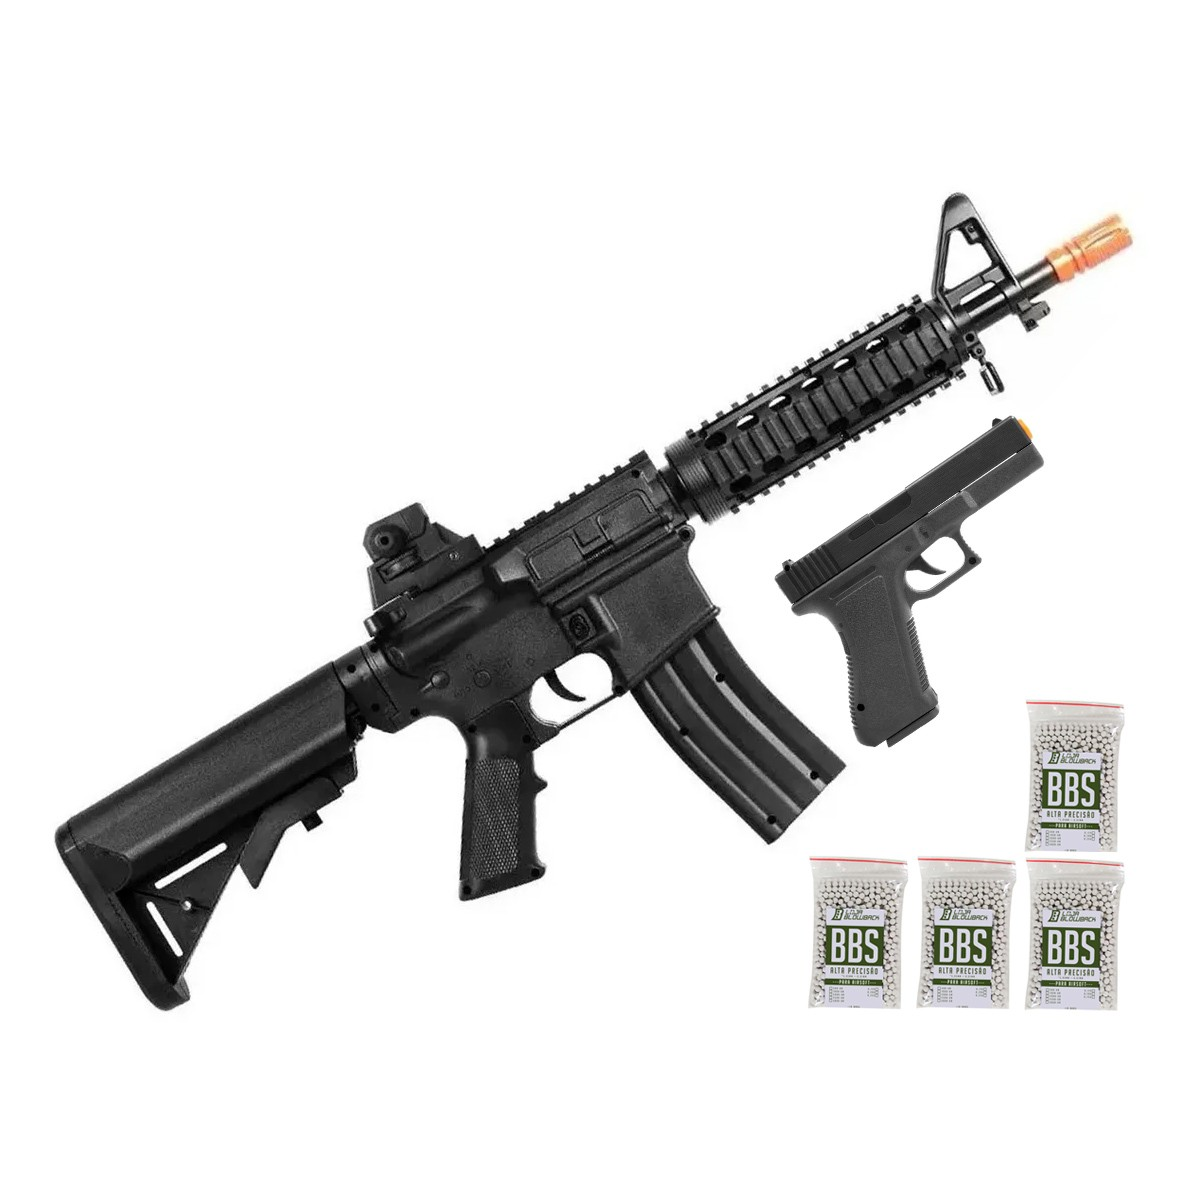 Airsoft Kit Pistola E Rifle M4a1 E Glock V307 Mola 6mm Kit 4